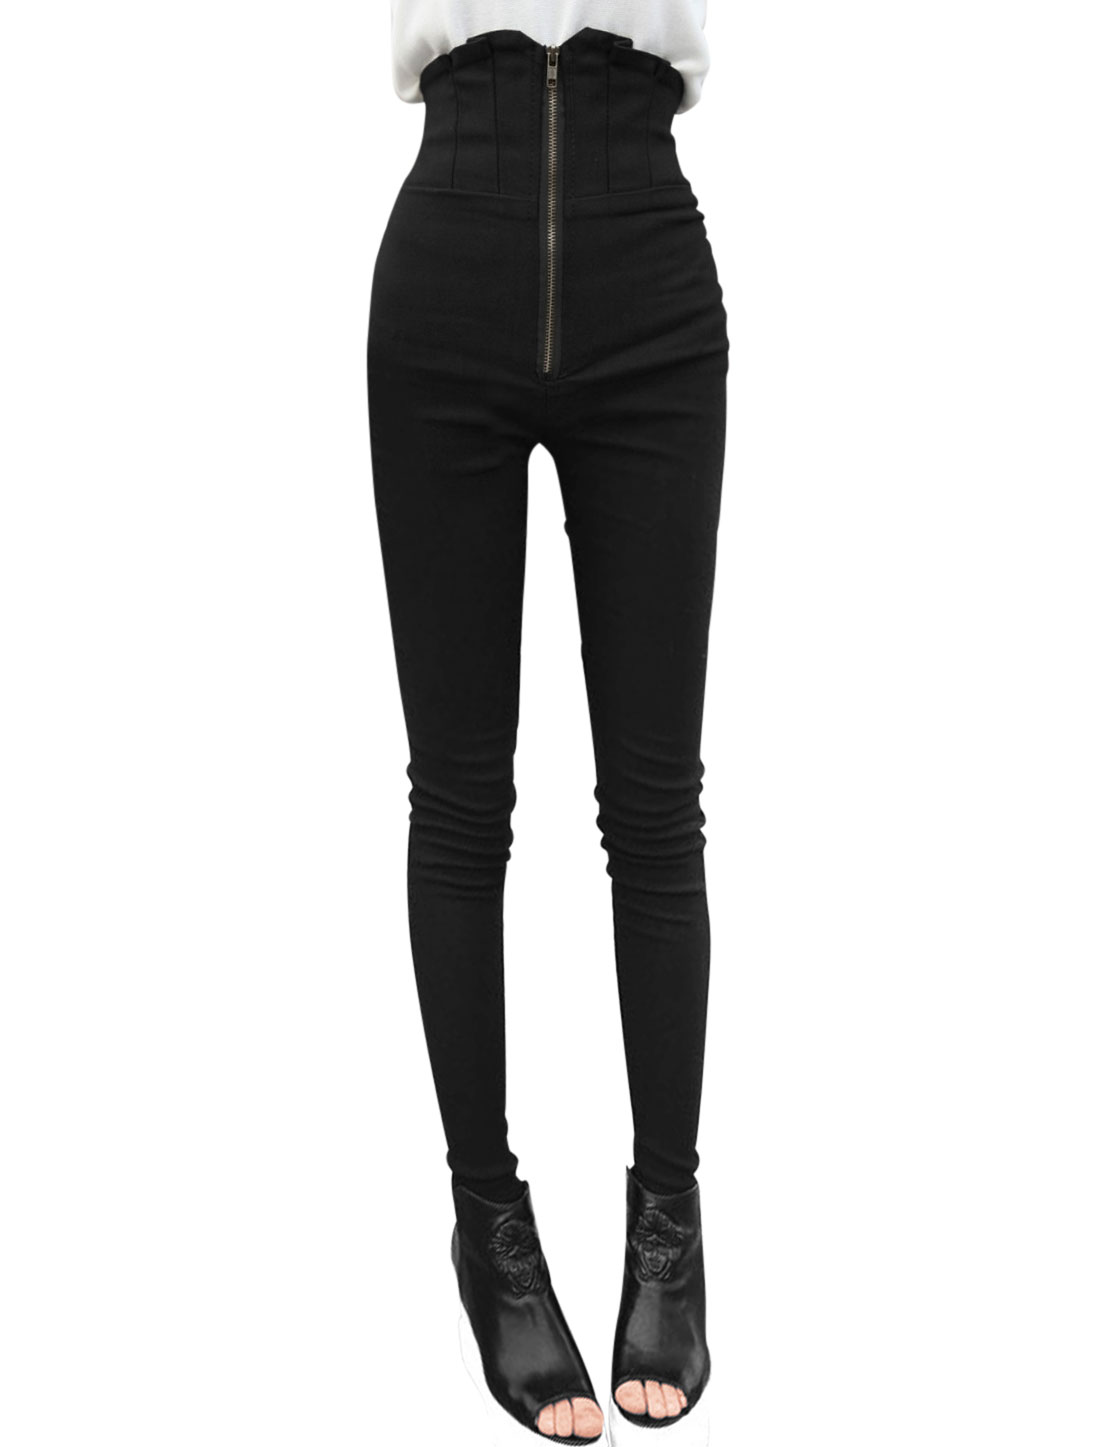 Women Black High Waist Zip Fly Mock Hip Pockets Skinny Casaul Pants XS